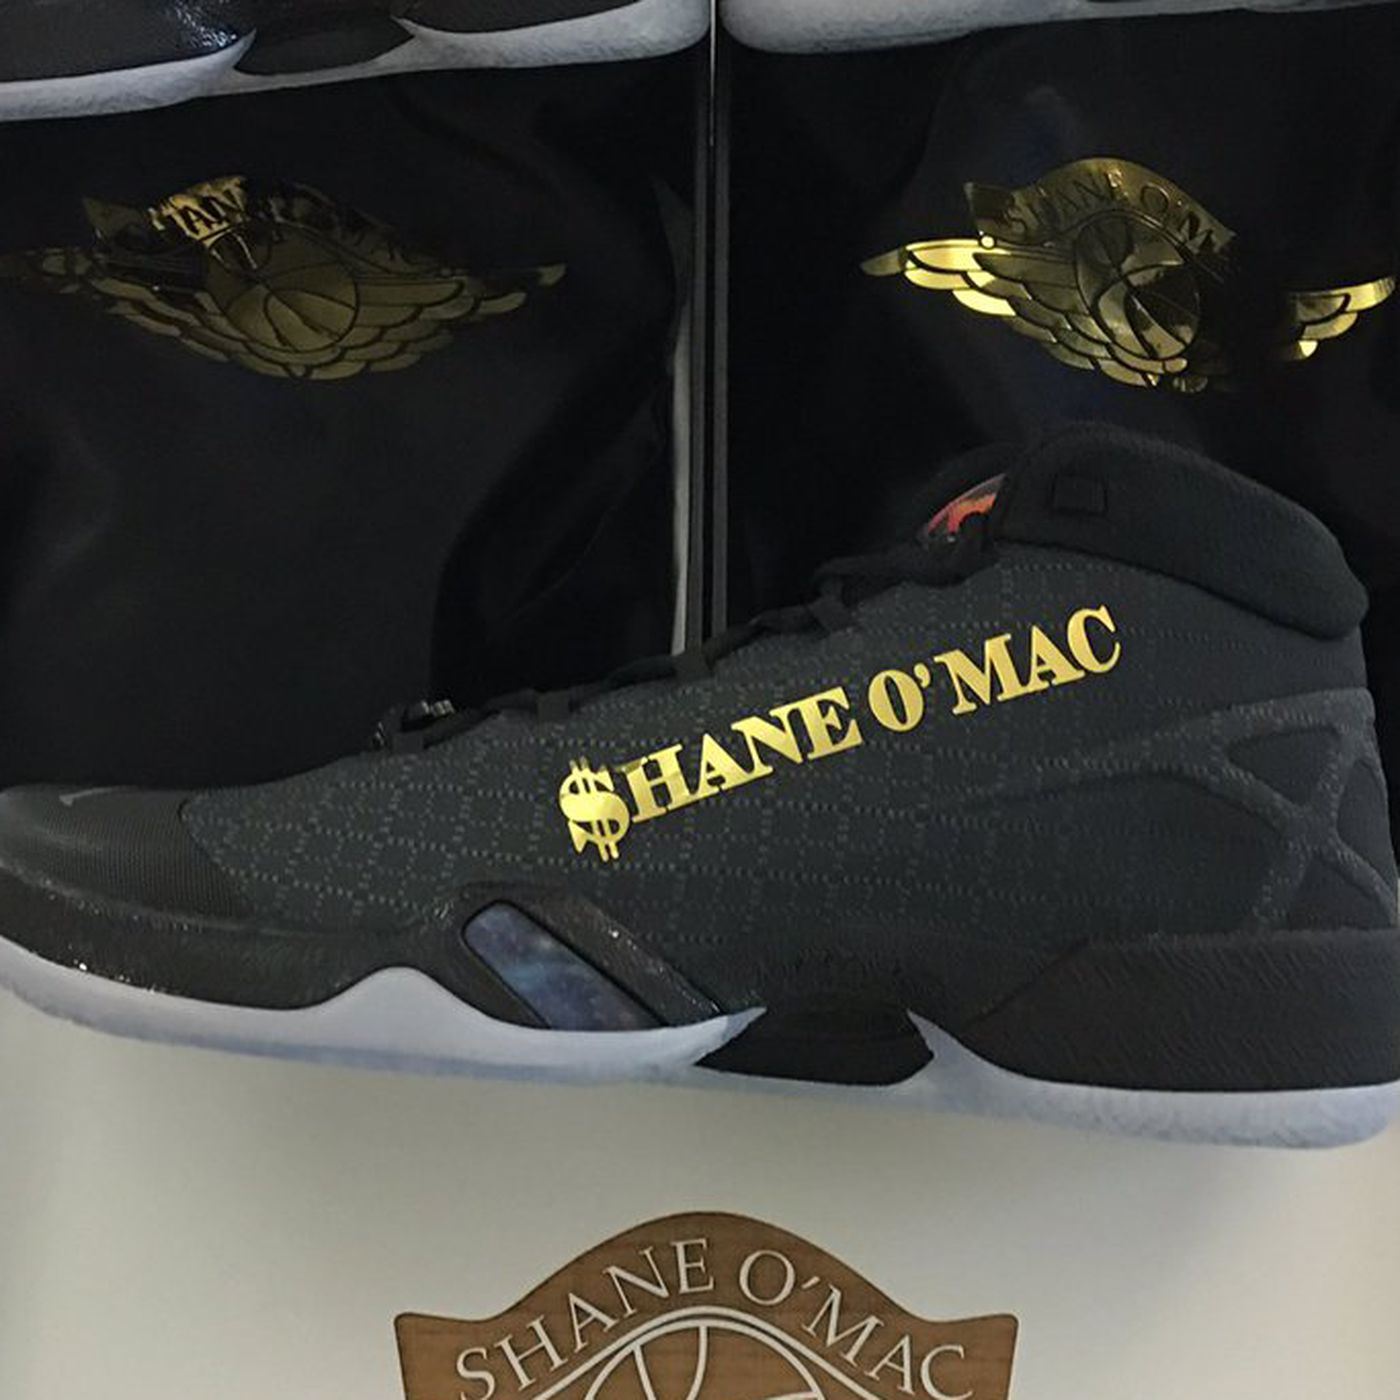 These are the custom Jordans Shane McMahon will wear at WrestleMania 32 -  SBNation.com